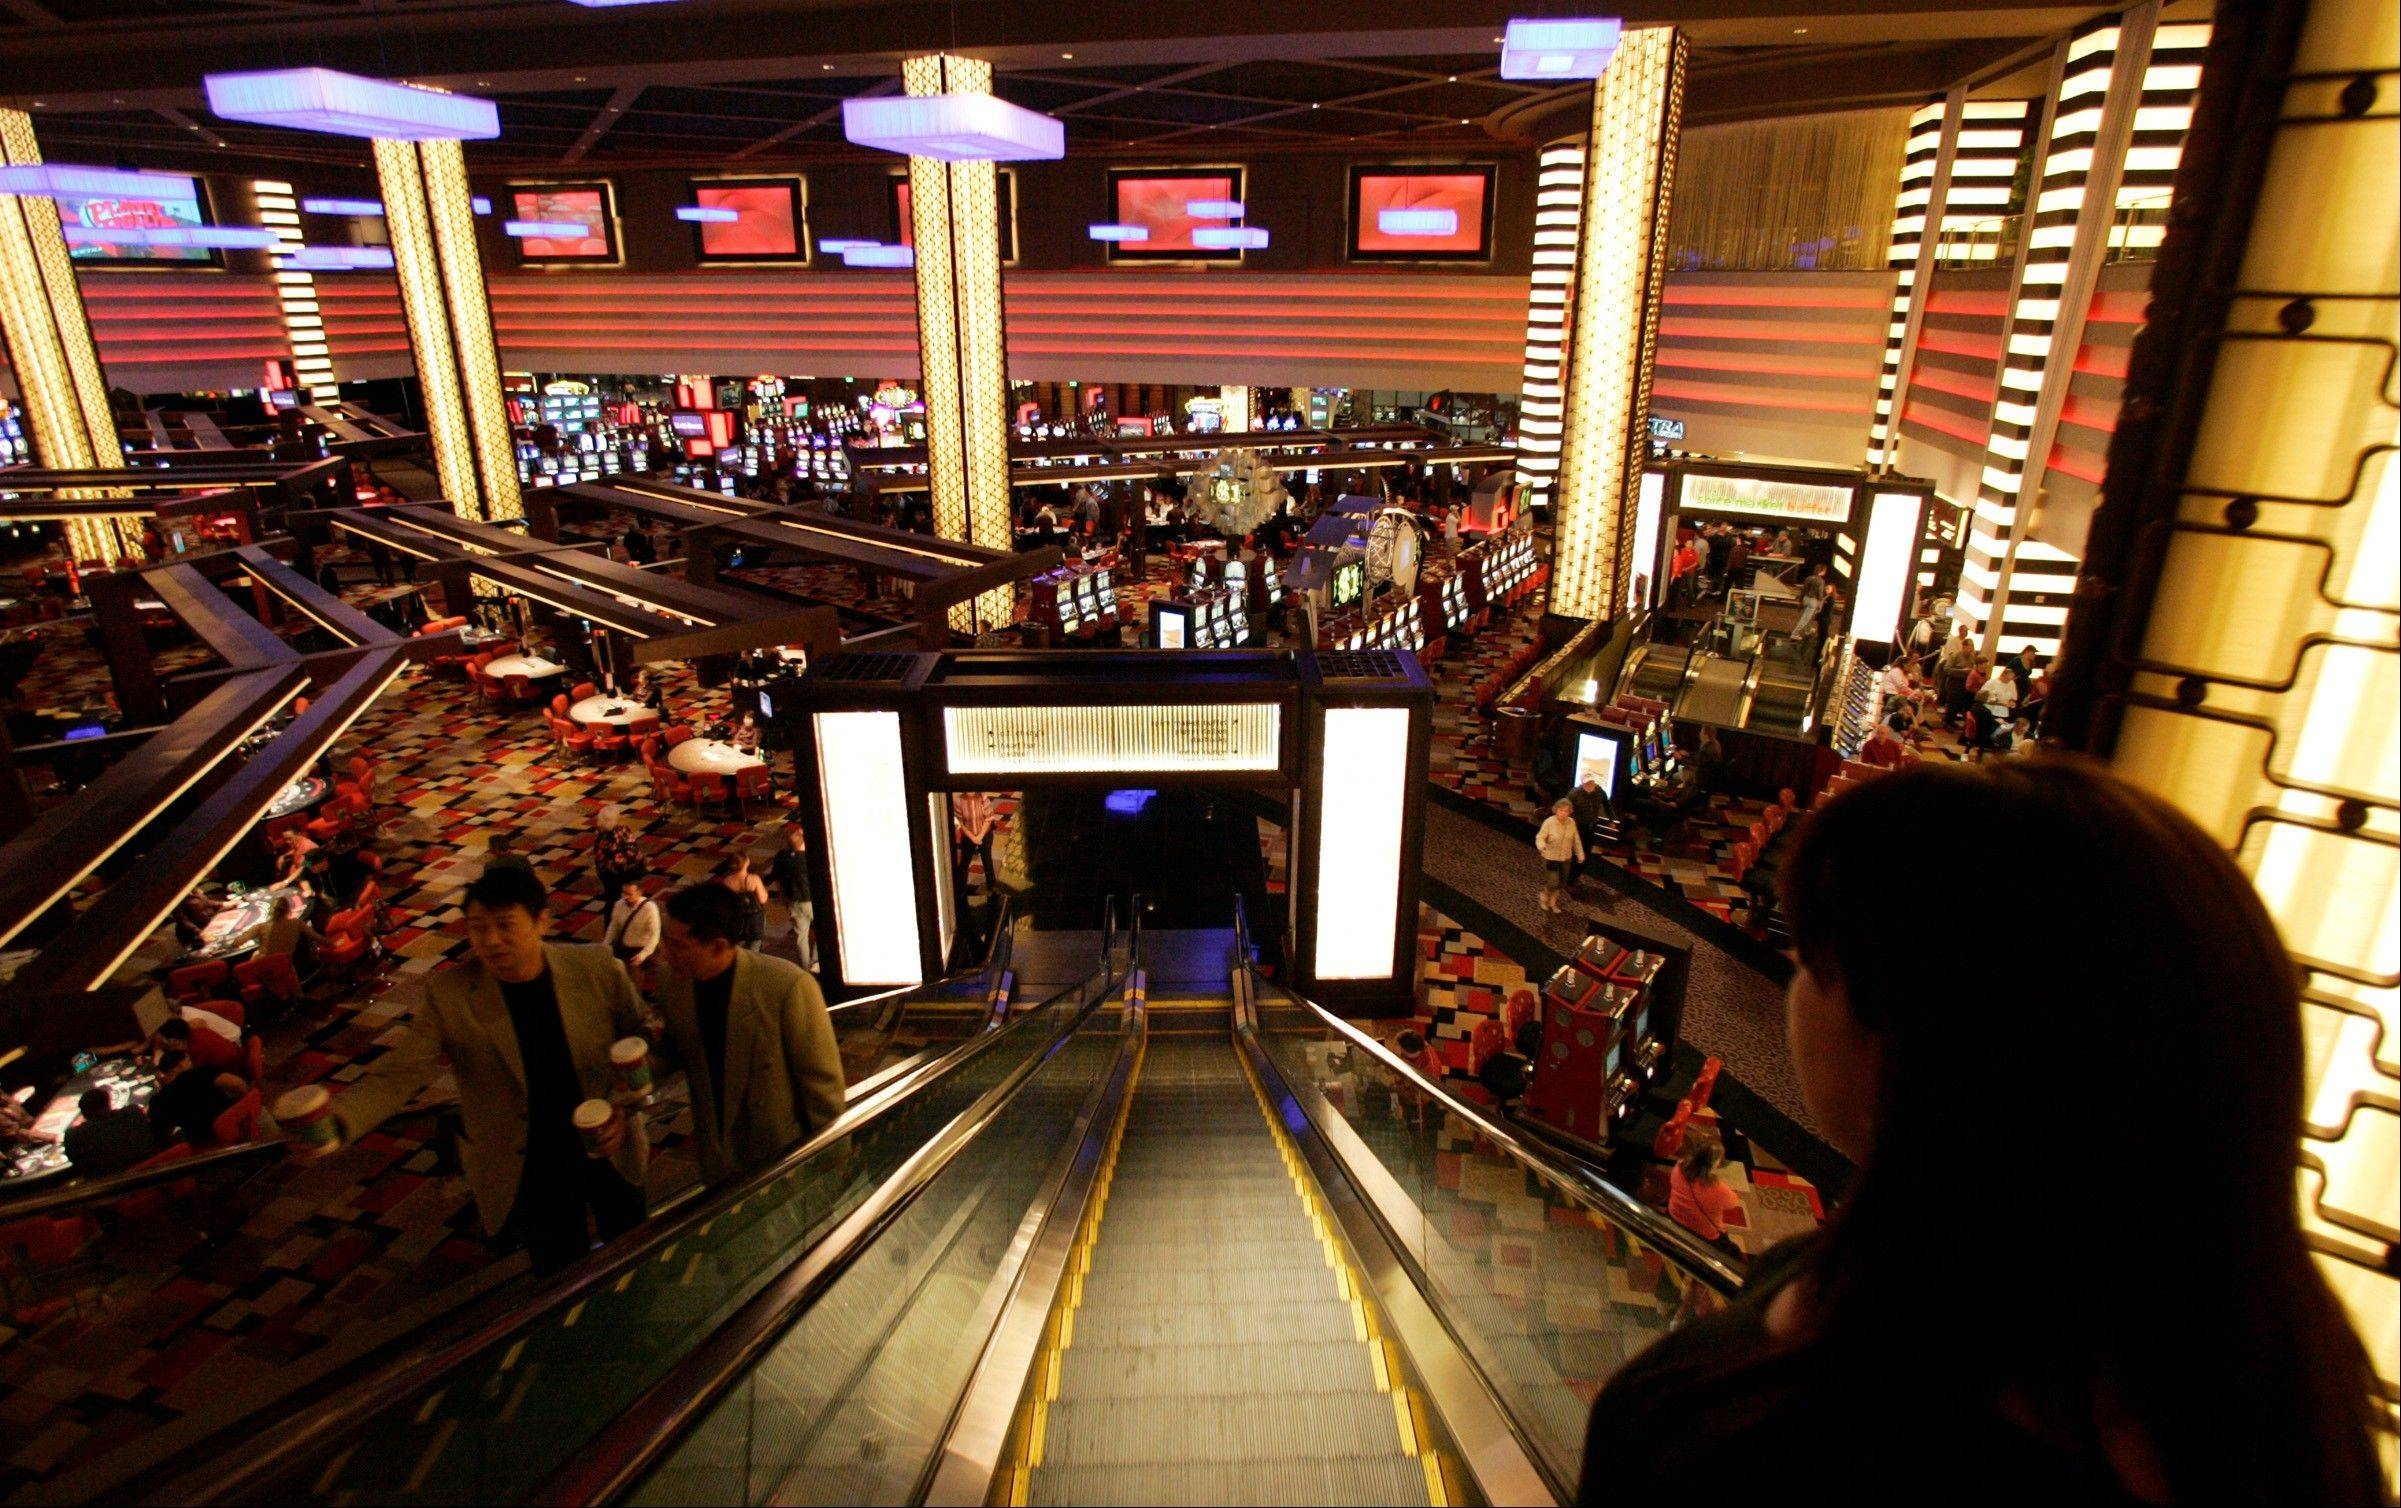 Guests descend an escalator to the main casino floor of the Planet Hollywood Resort & Casino in Las Vegas. While casinos have thousands of cameras watching the gaming floors, entrances and some elevators, cameras are absent in the hallways of the guest room floors where thousands of crimes occur.